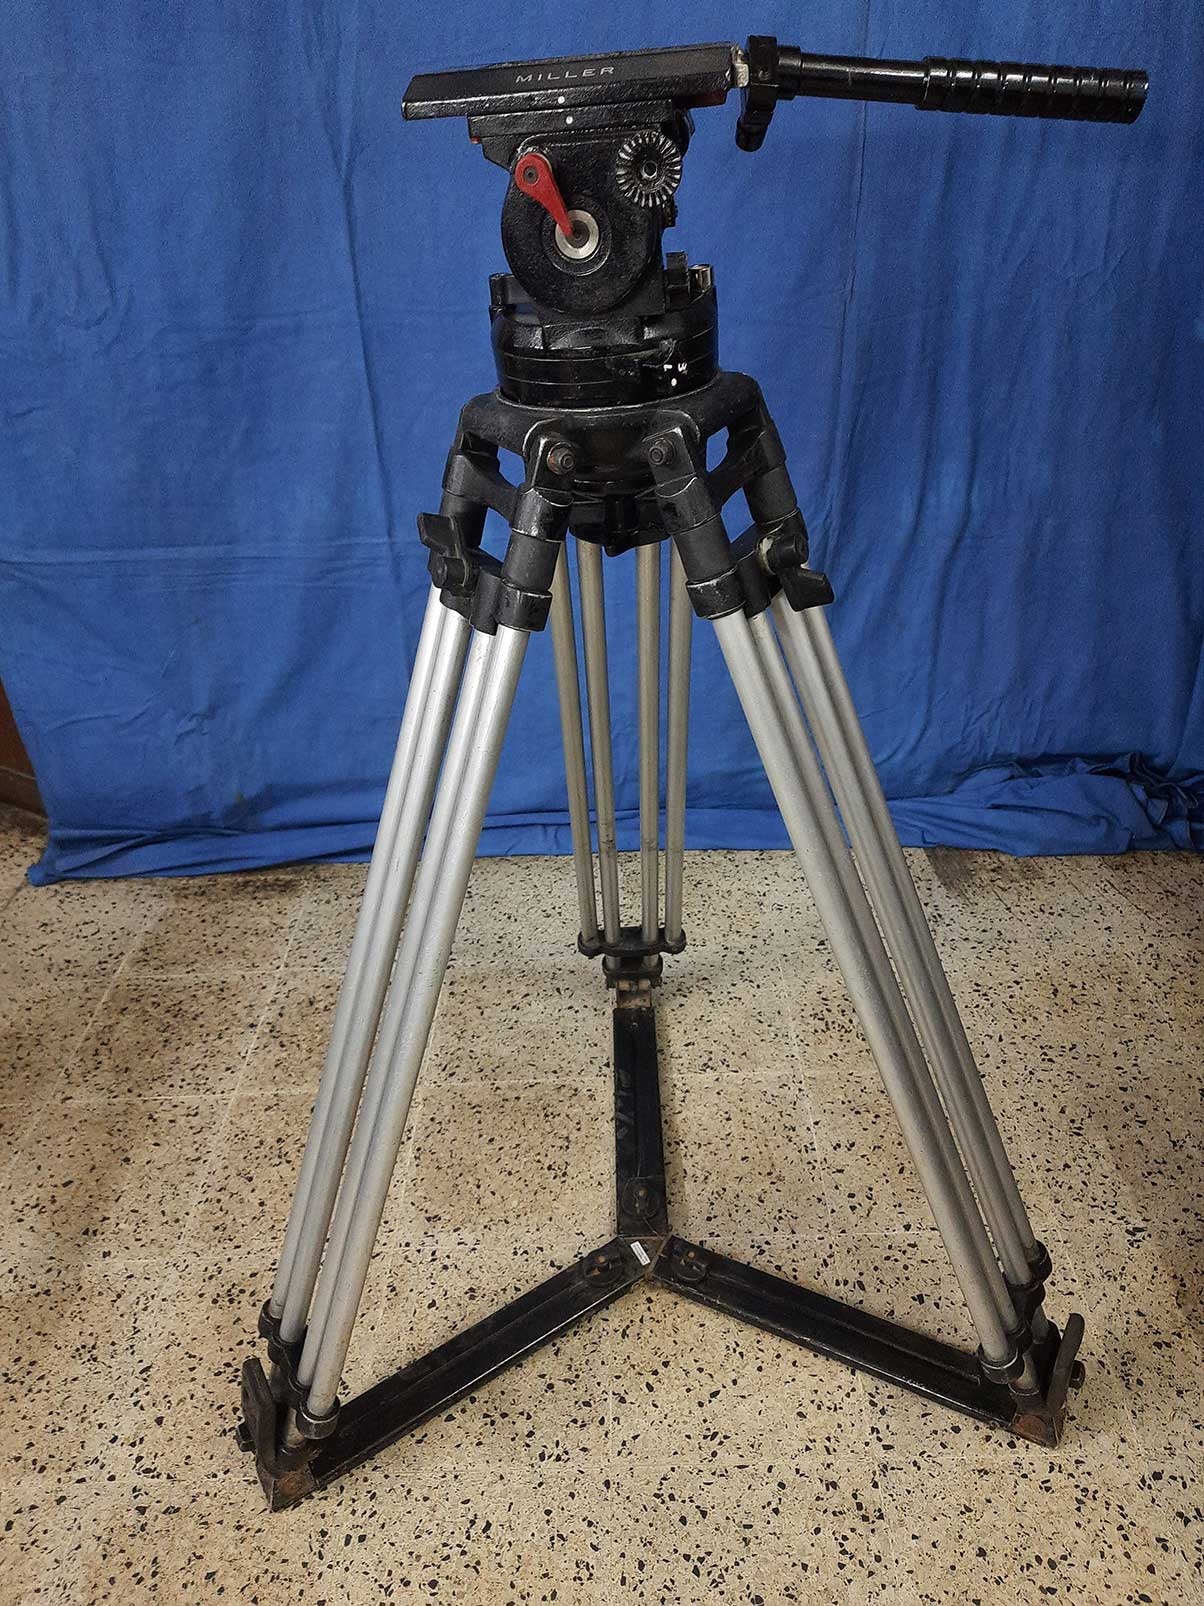 Miller  heavy duty 150 mm bowl size head tripod with very tall legs and spreader. - Image #1